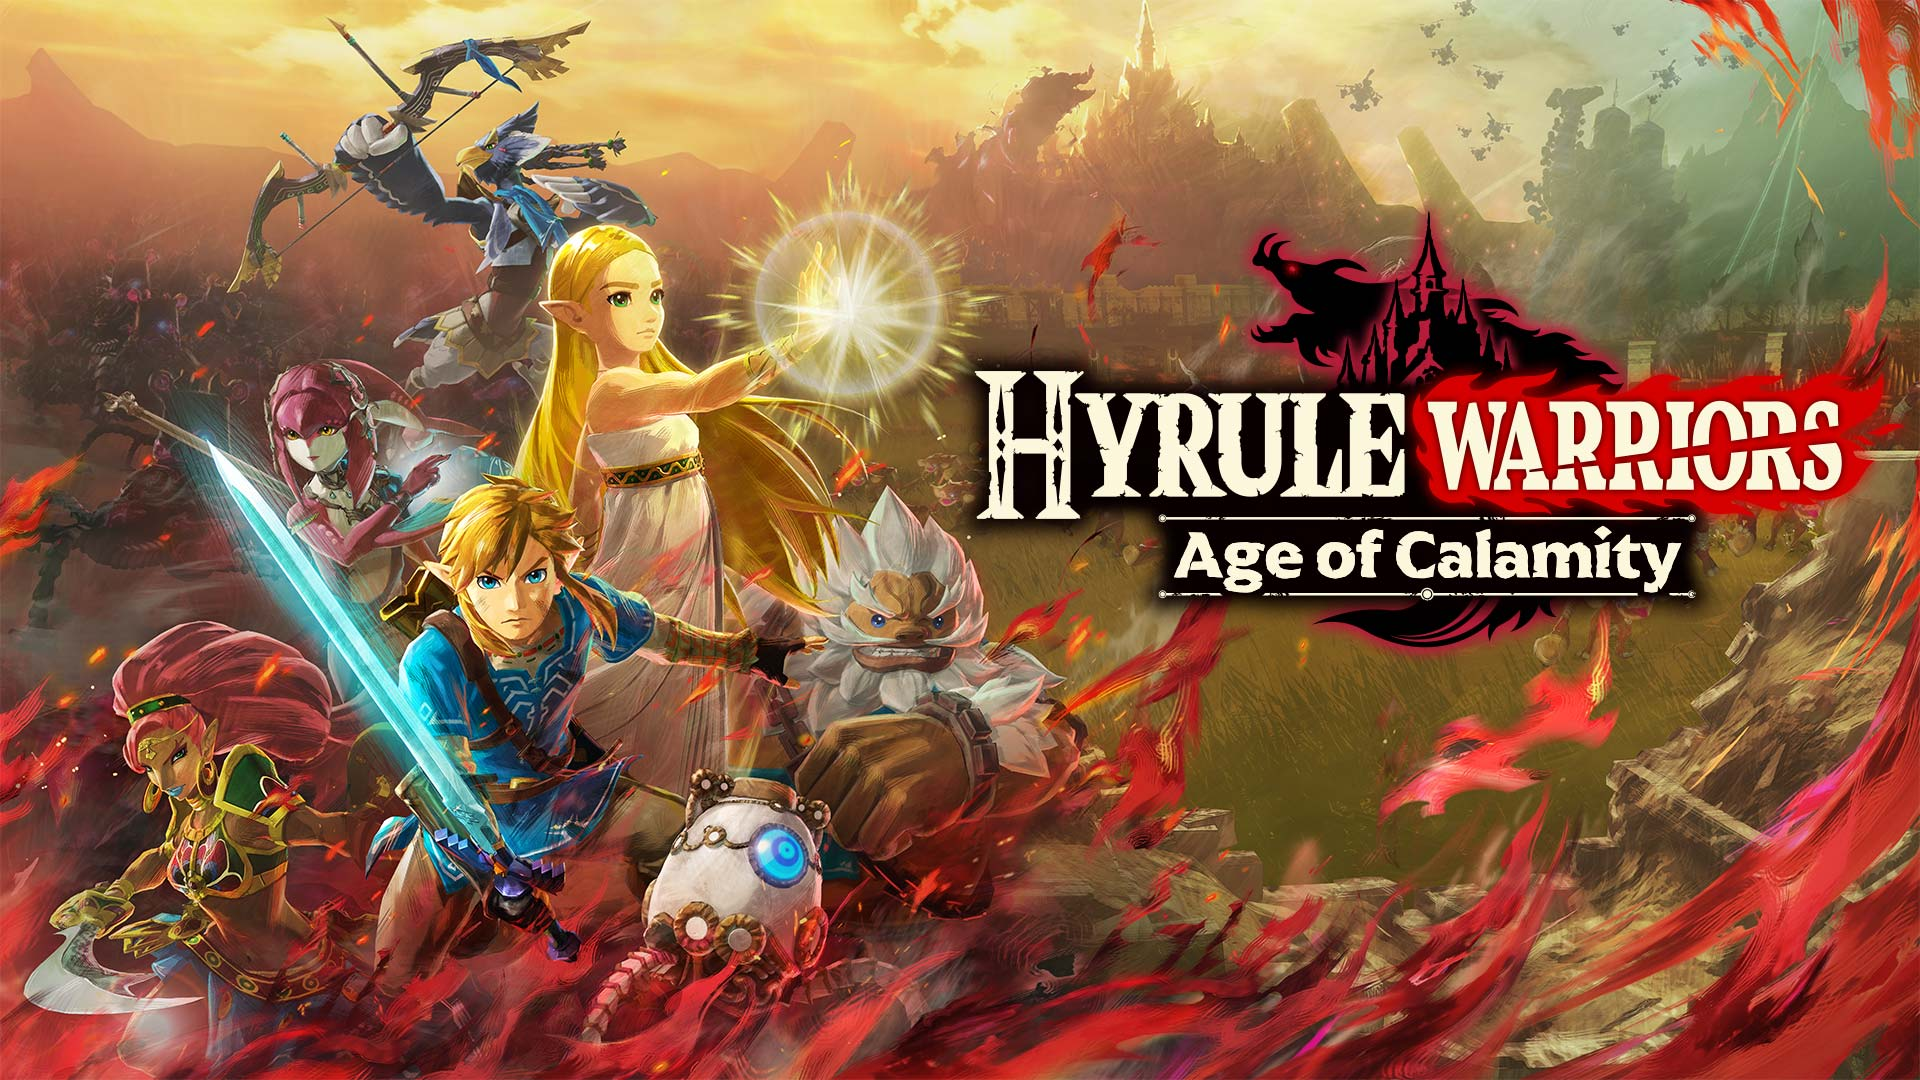 Hyrule Warriors Age Of Calamity Website Confirms The Game Supports Local Co Op Multiplayer Nintendosoup